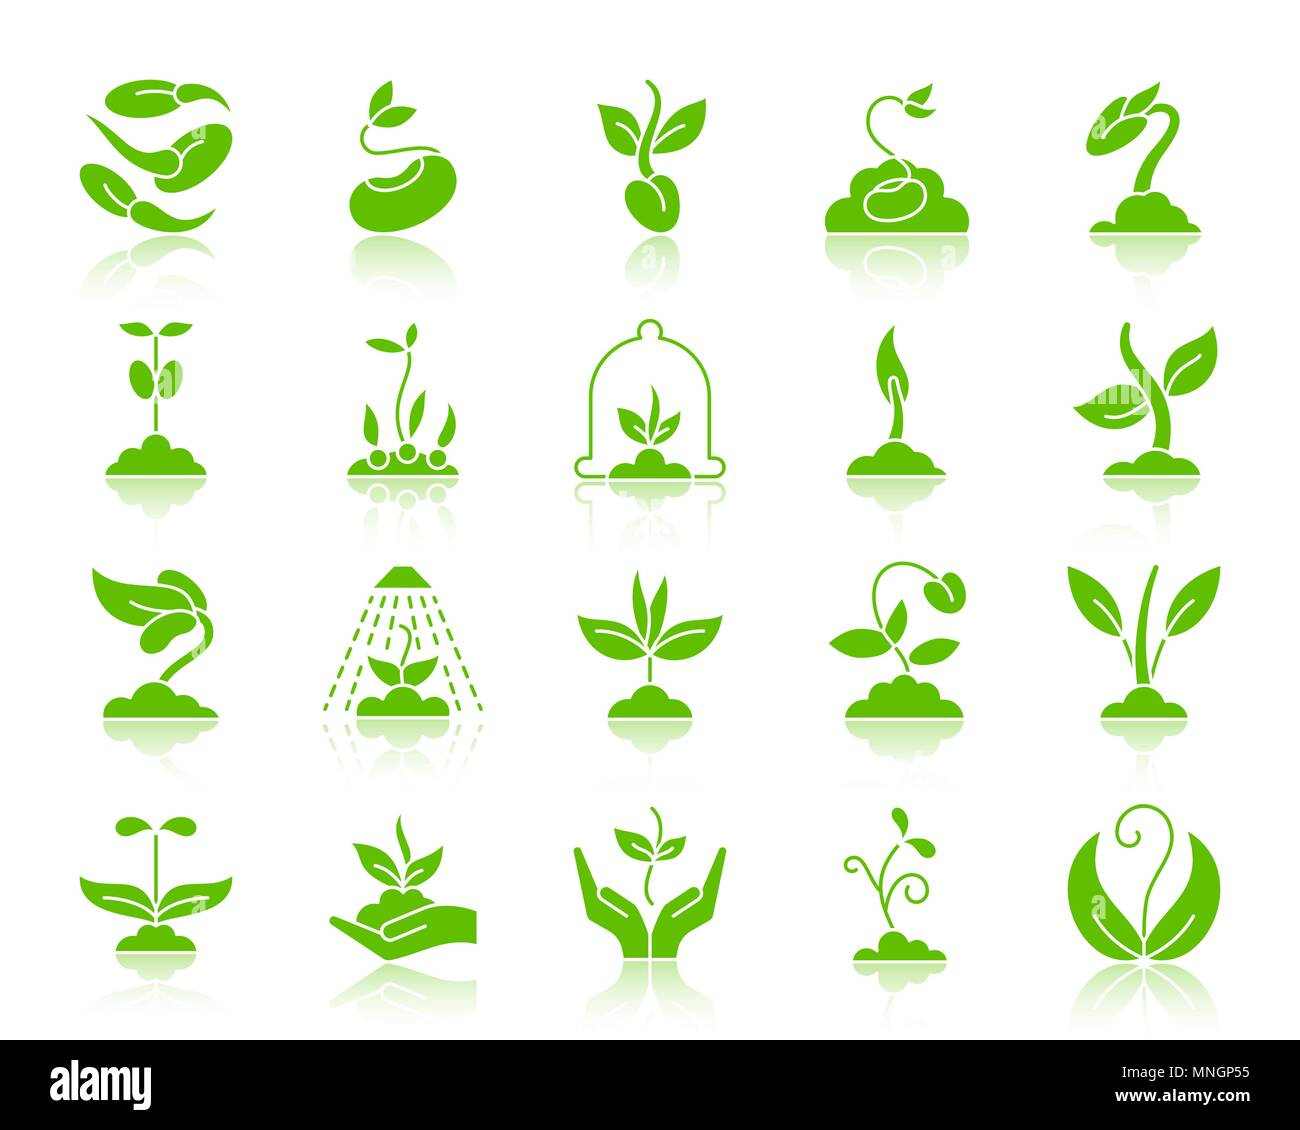 Sprout green silhouette icons set. Kit de connexion Web de graines. Pictogramme monochrome plante collection comprend fleur, herbe, arbre. Symbole de germes simples wit Illustration de Vecteur